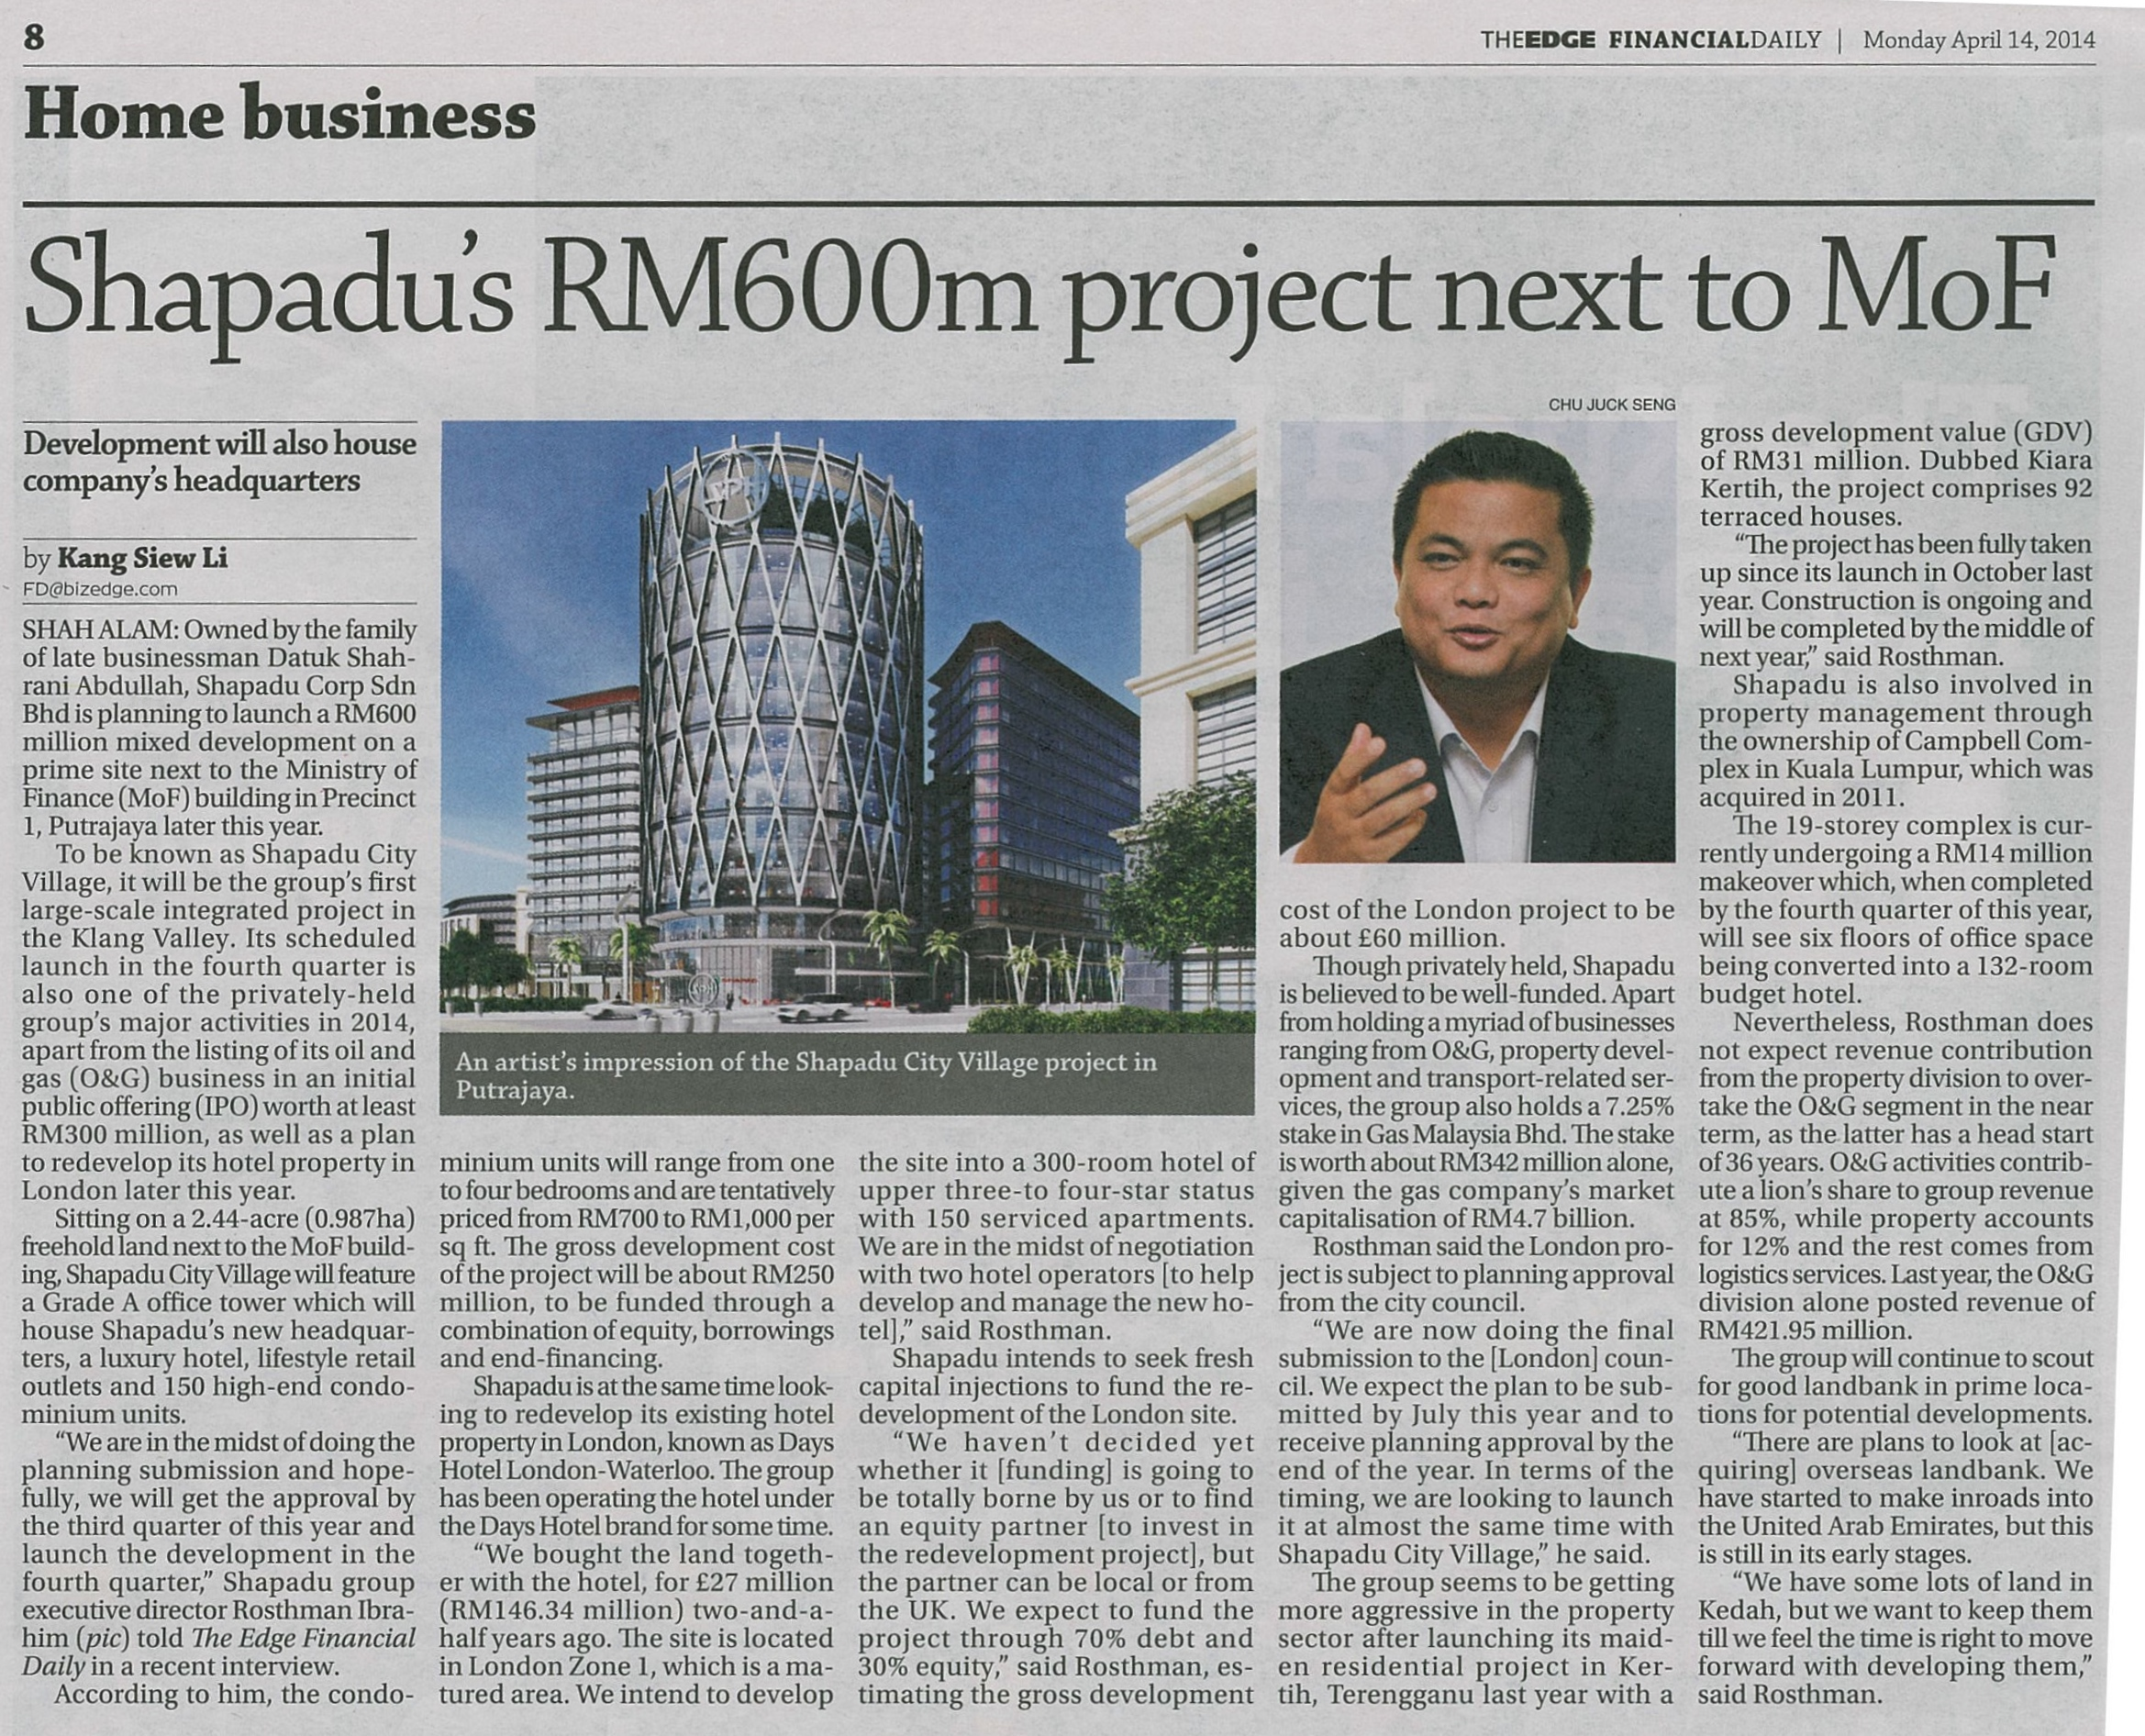 FinDaily14Apr14Shapadu600mProjectNextToMOF